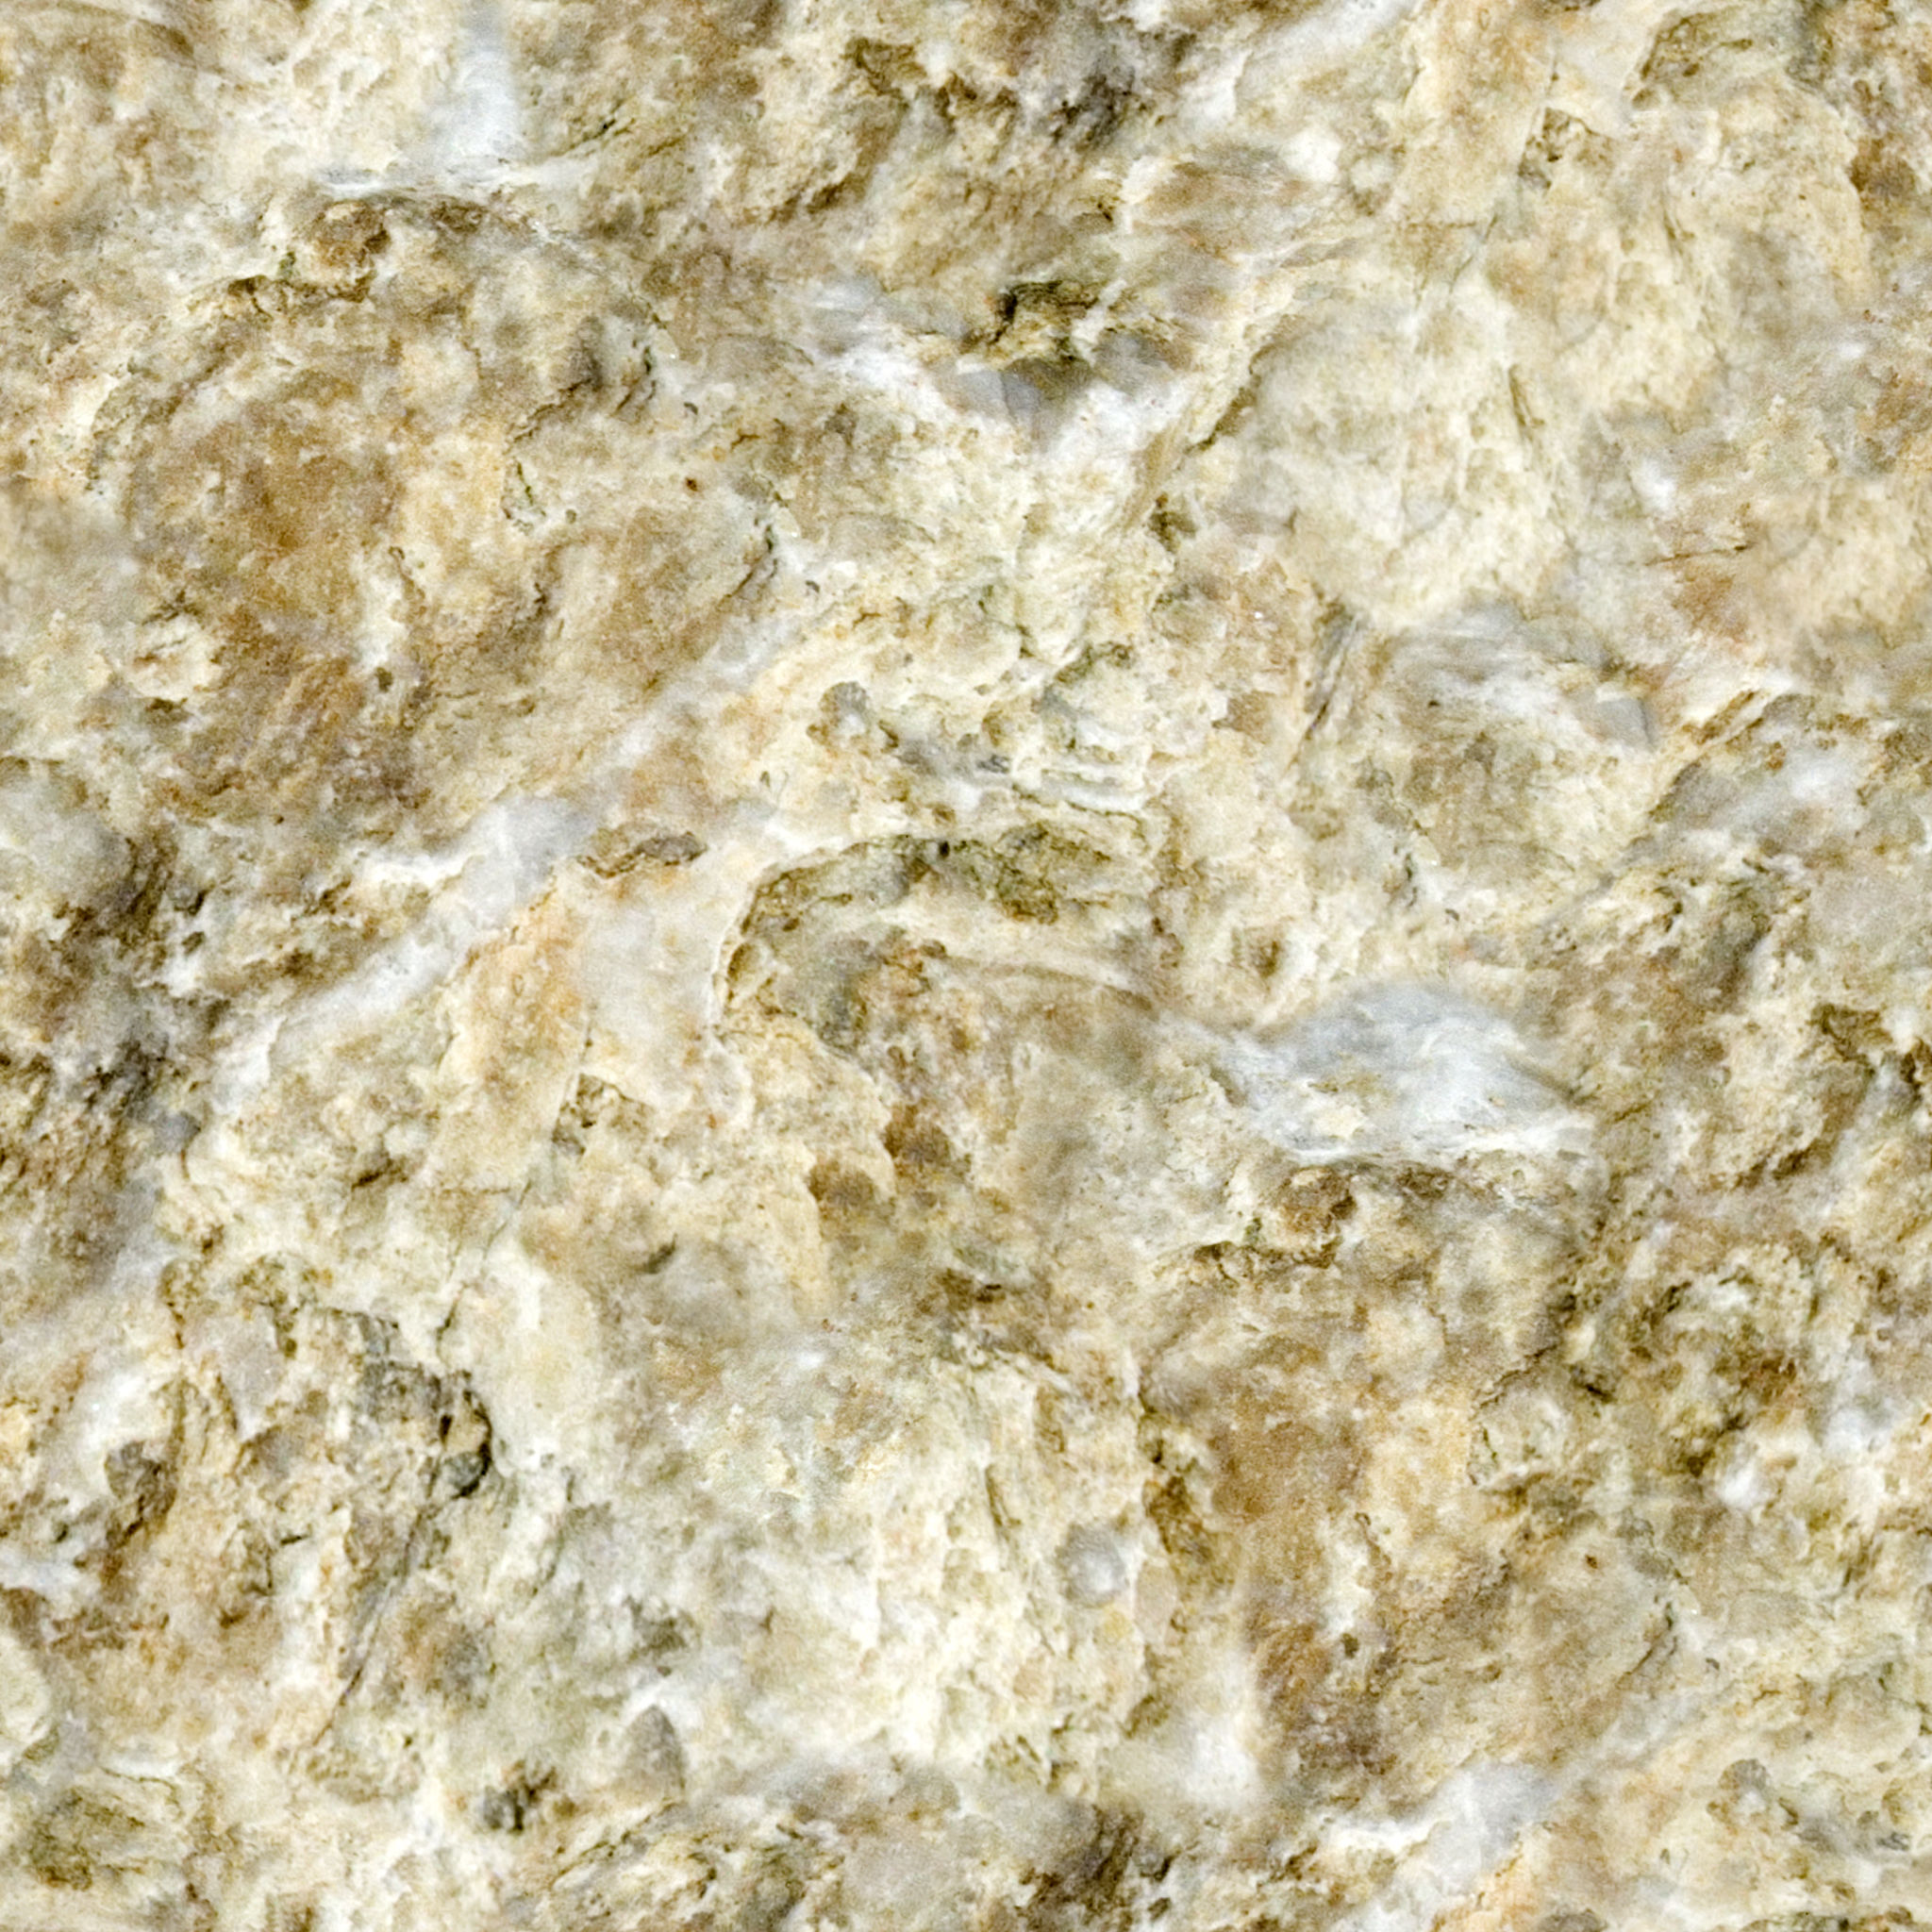 Beige Quartz Rock.jpg